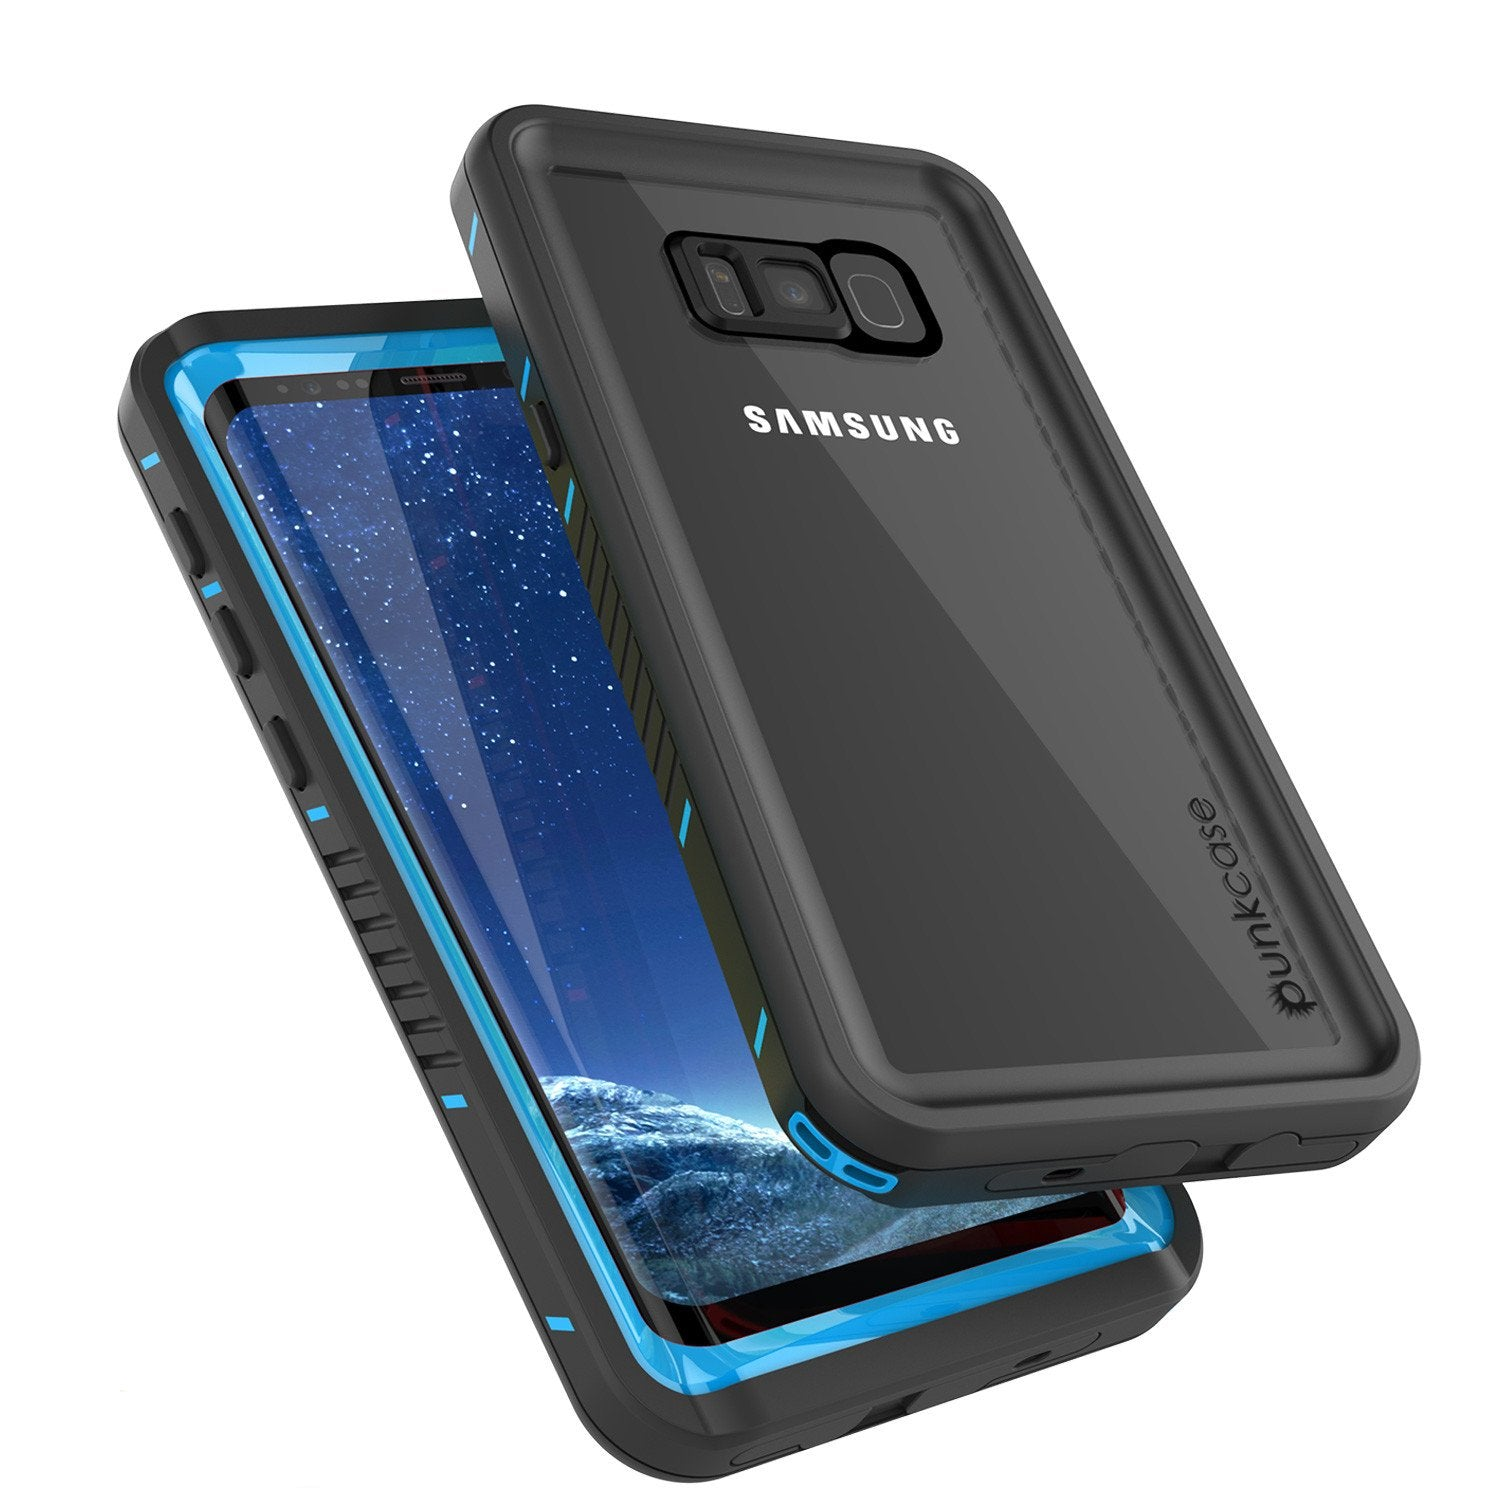 Galaxy S8 PLUS Waterproof Case, Punkcase [Extreme Series] [Slim Fit] [IP68 Certified] [Shockproof] [Snowproof] [Dirproof] Armor Cover [Light Blue]